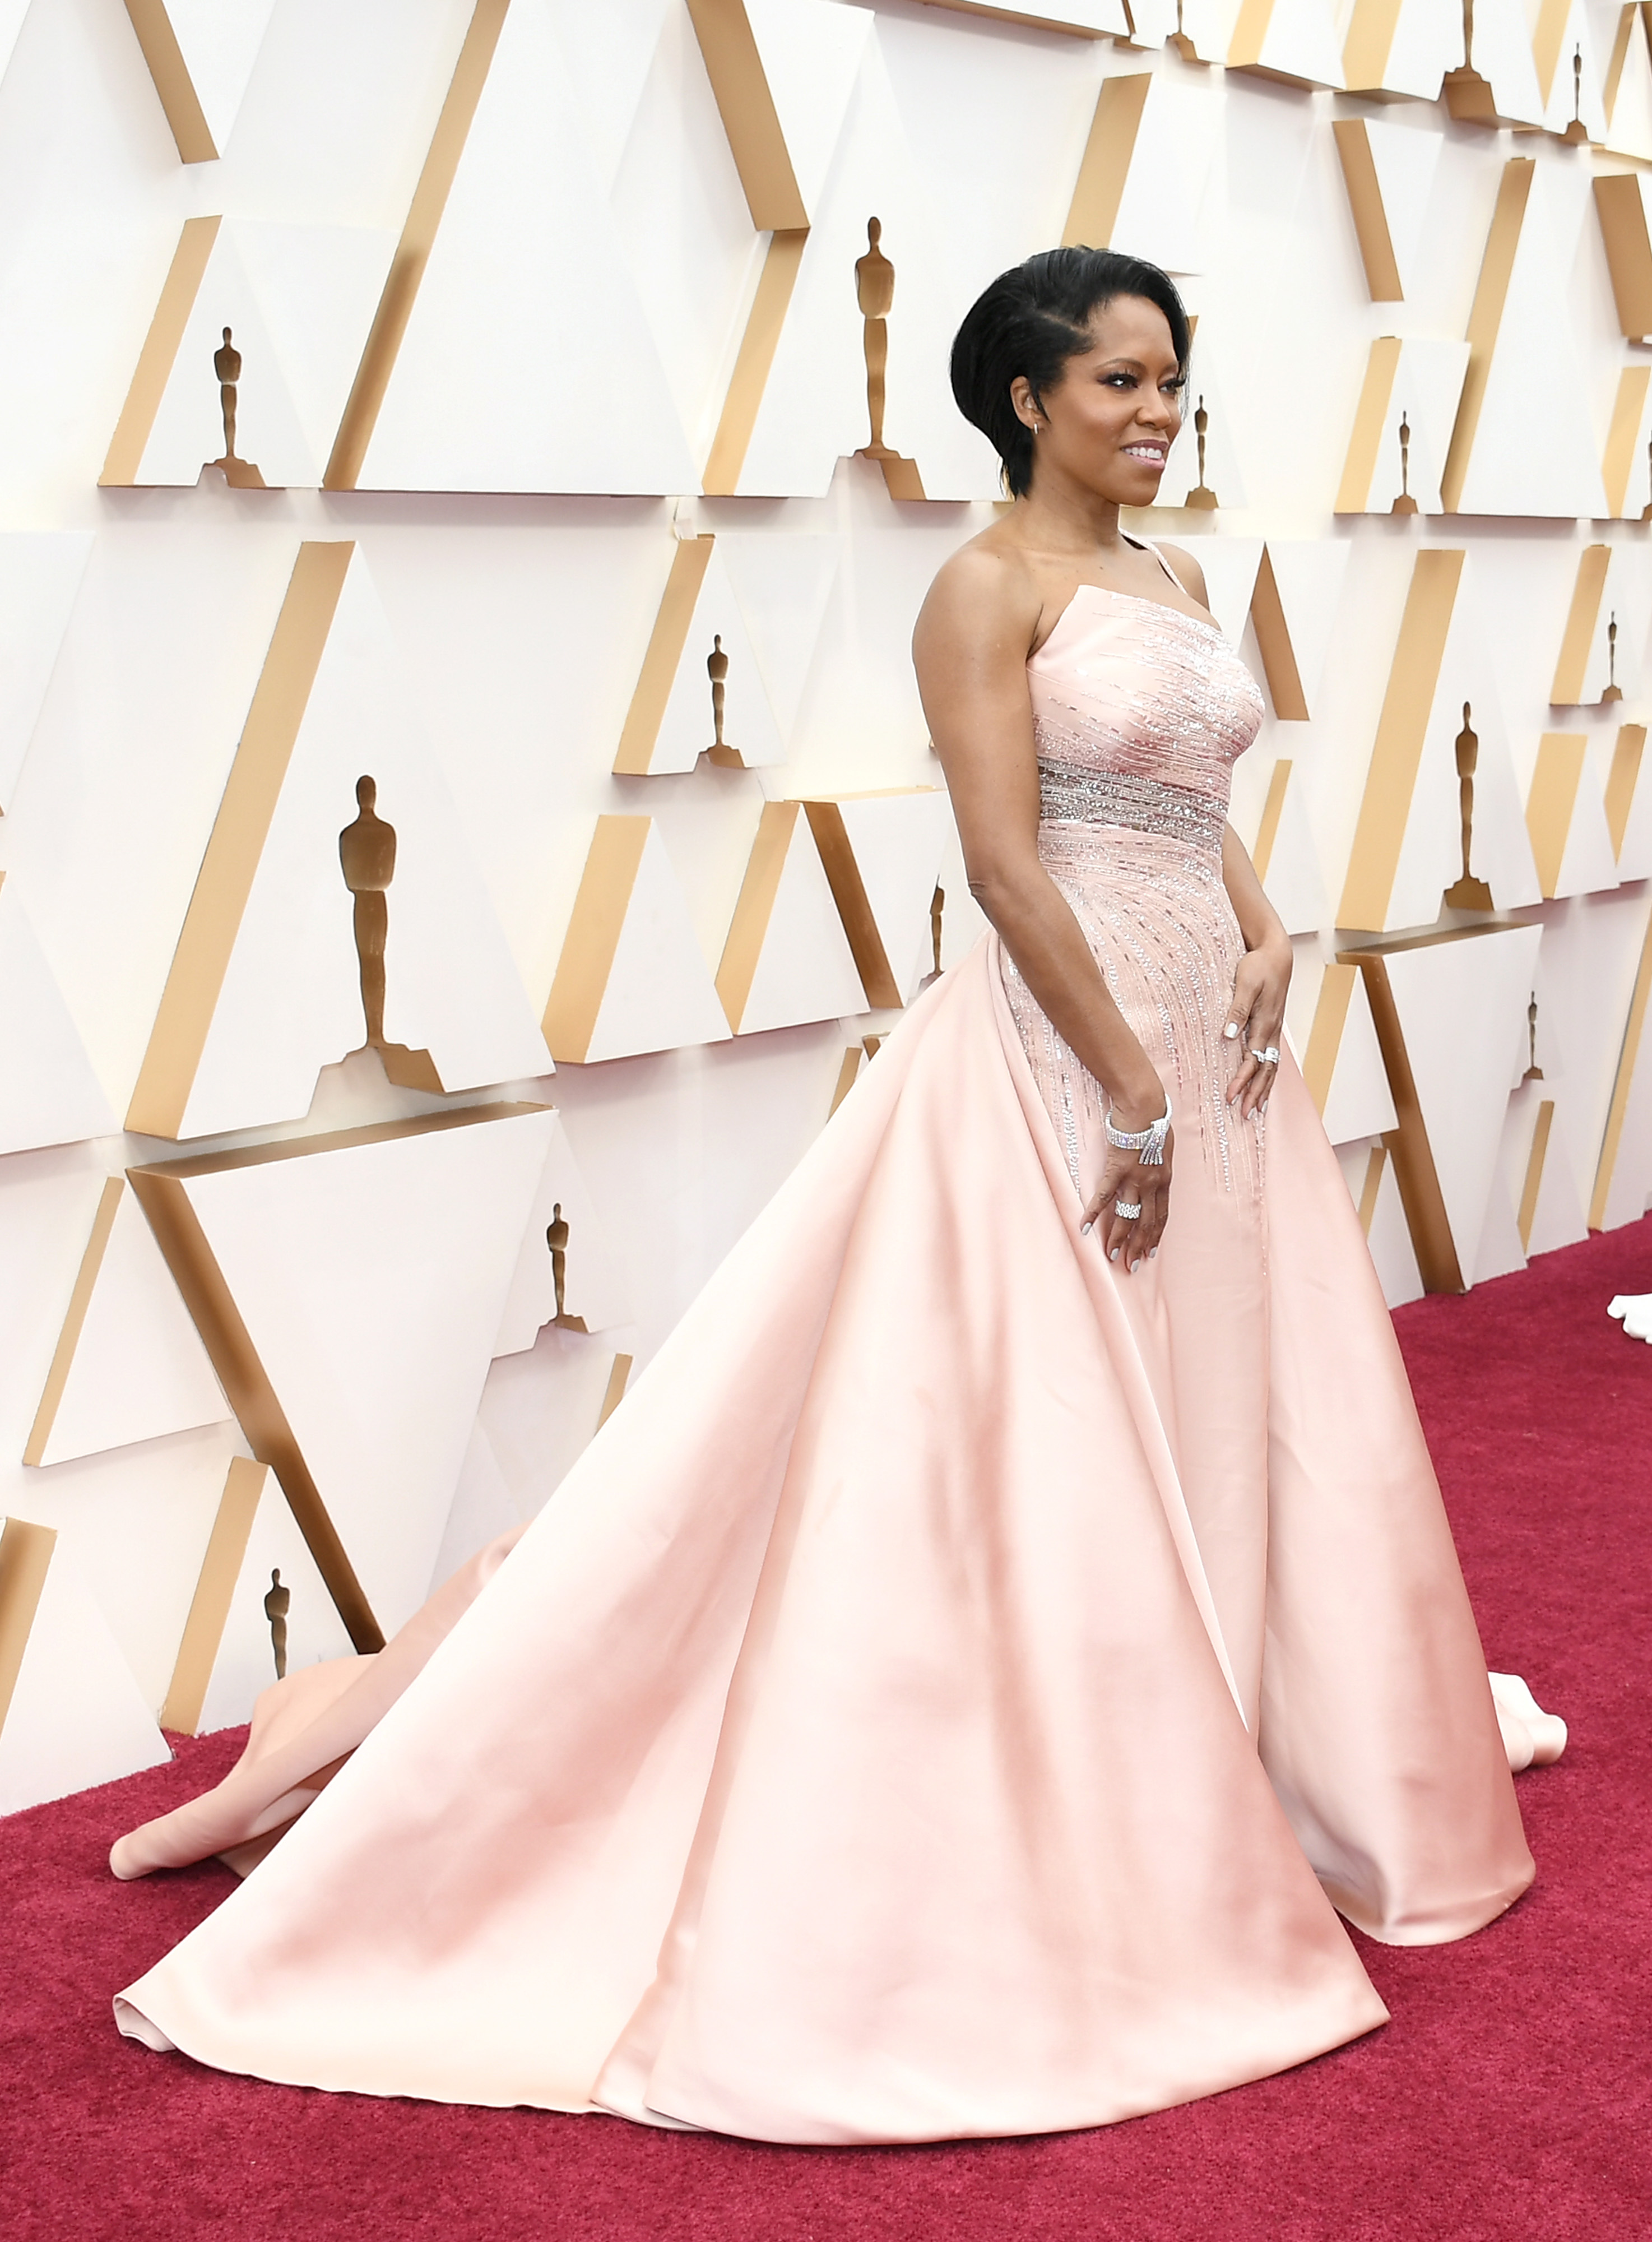 HOLLYWOOD, CALIFORNIA - FEBRUARY 09: Regina King attends the 92nd Annual Academy Awards at Hollywood and Highland on February 09, 2020 in Hollywood, California. (Photo by Kevork Djansezian/Getty Images)